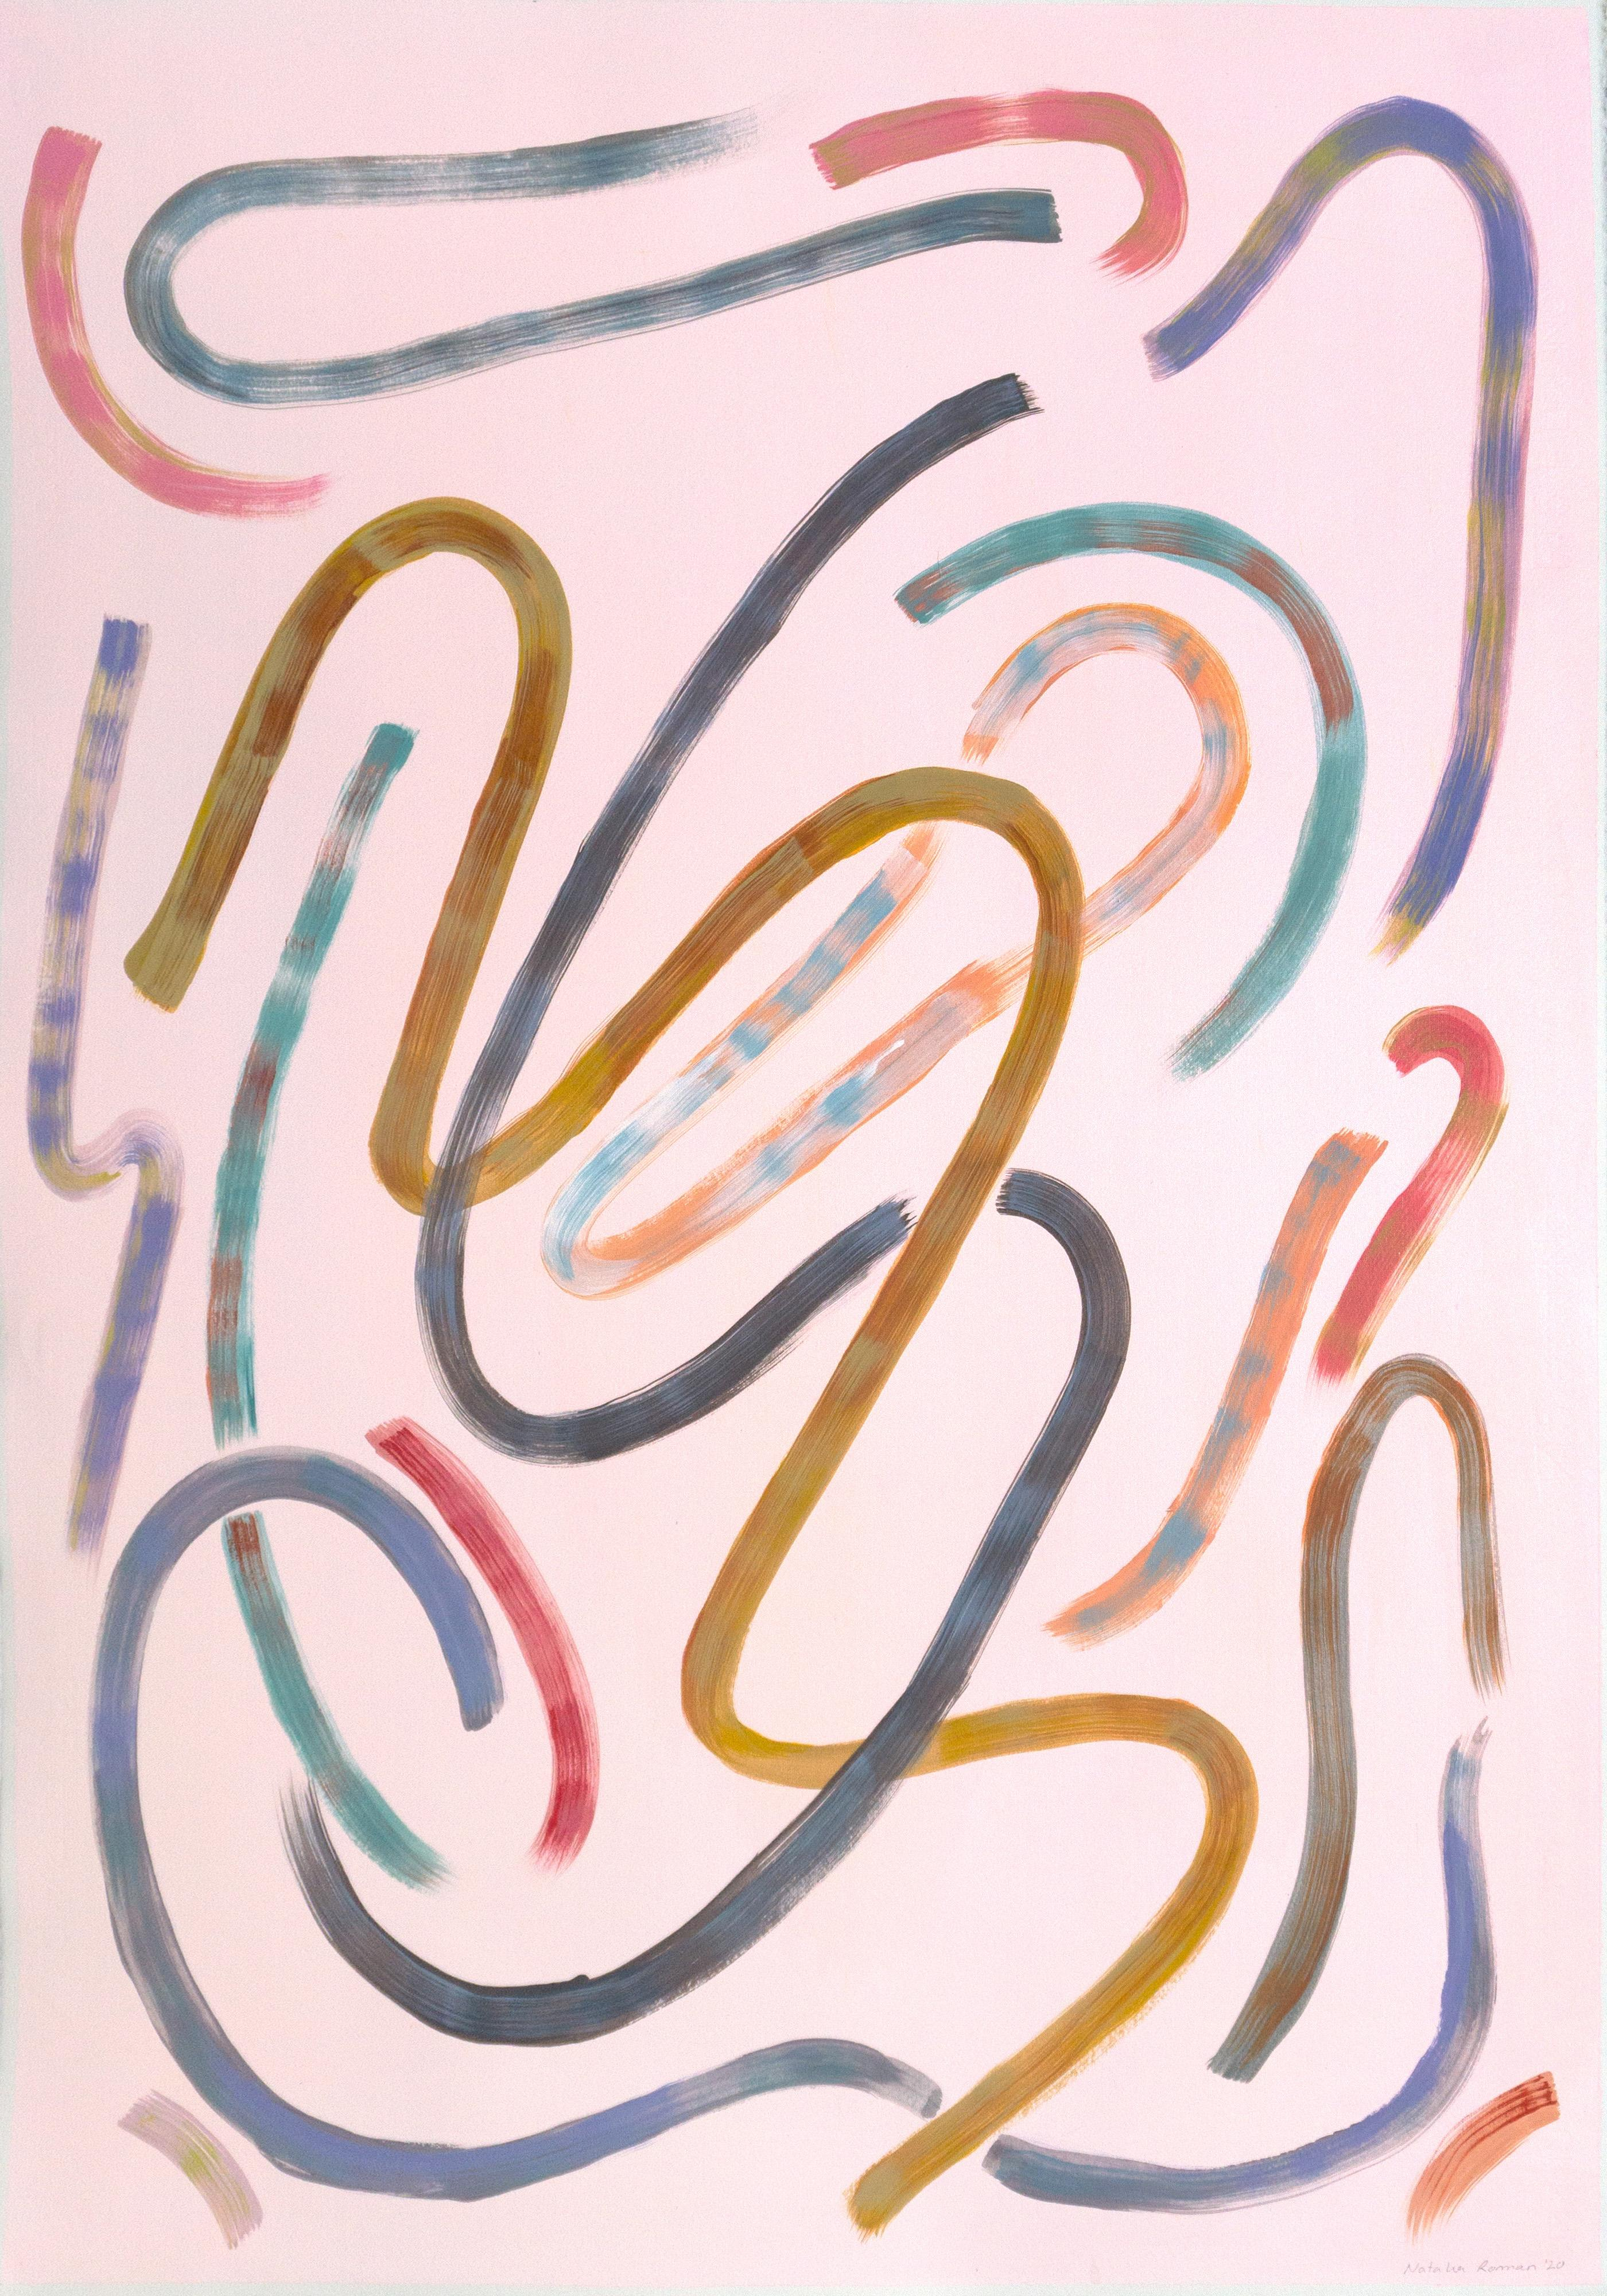 Lively Movements on Pastel Pink, Acrylic on Paper, 100x70 cm, Abstract, Classy